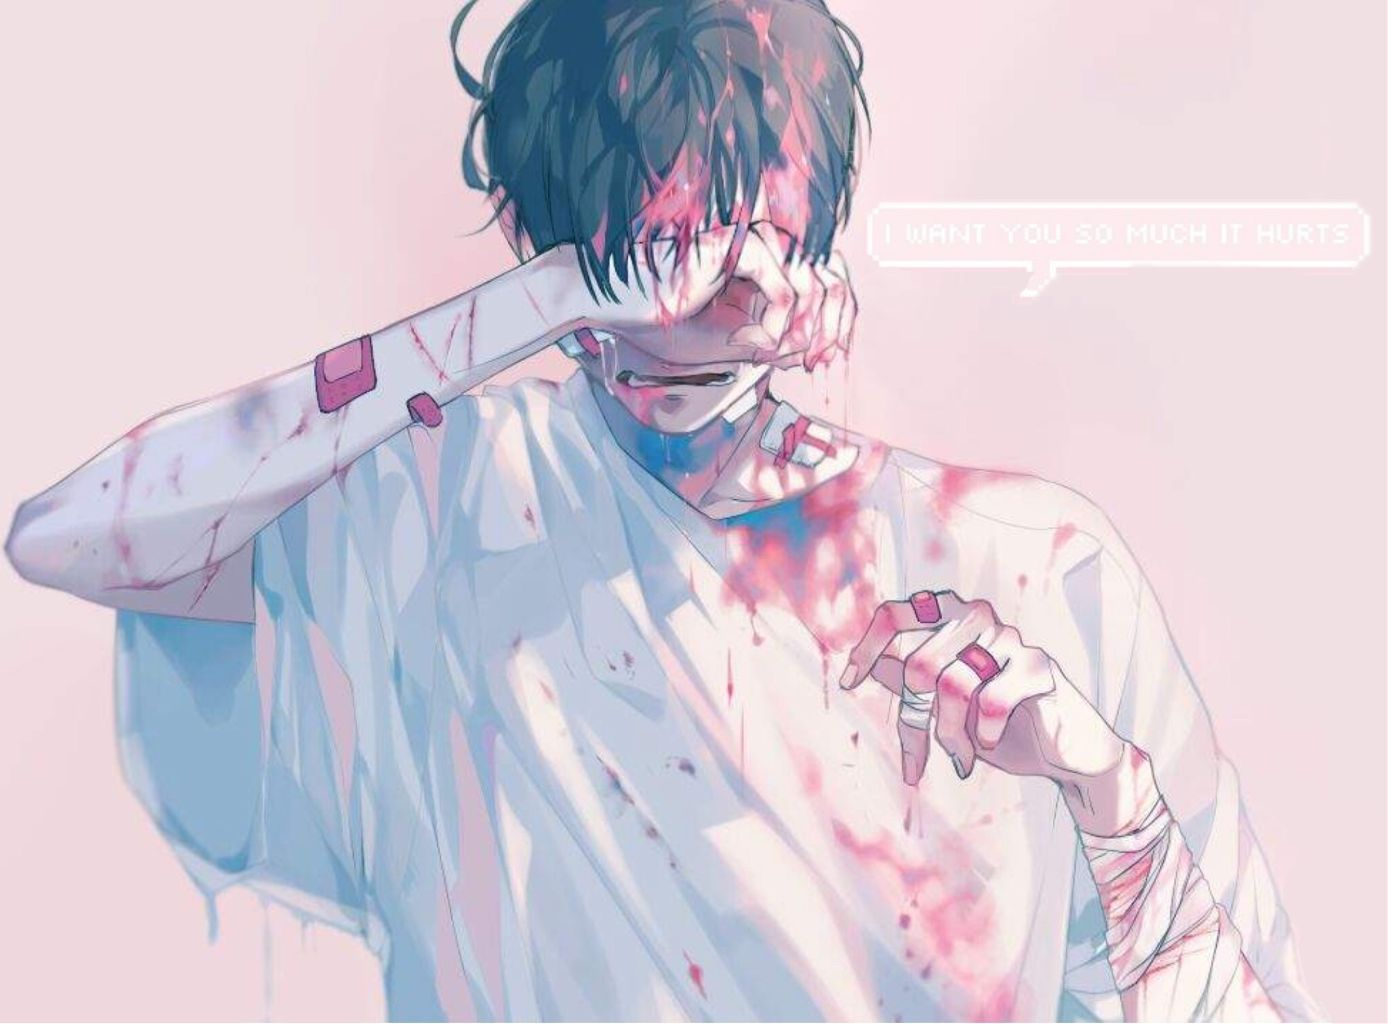 Image Result For Bruises Aesthetic Boy Anime Boy Crying Aesthetic Anime Bruises Aesthetic